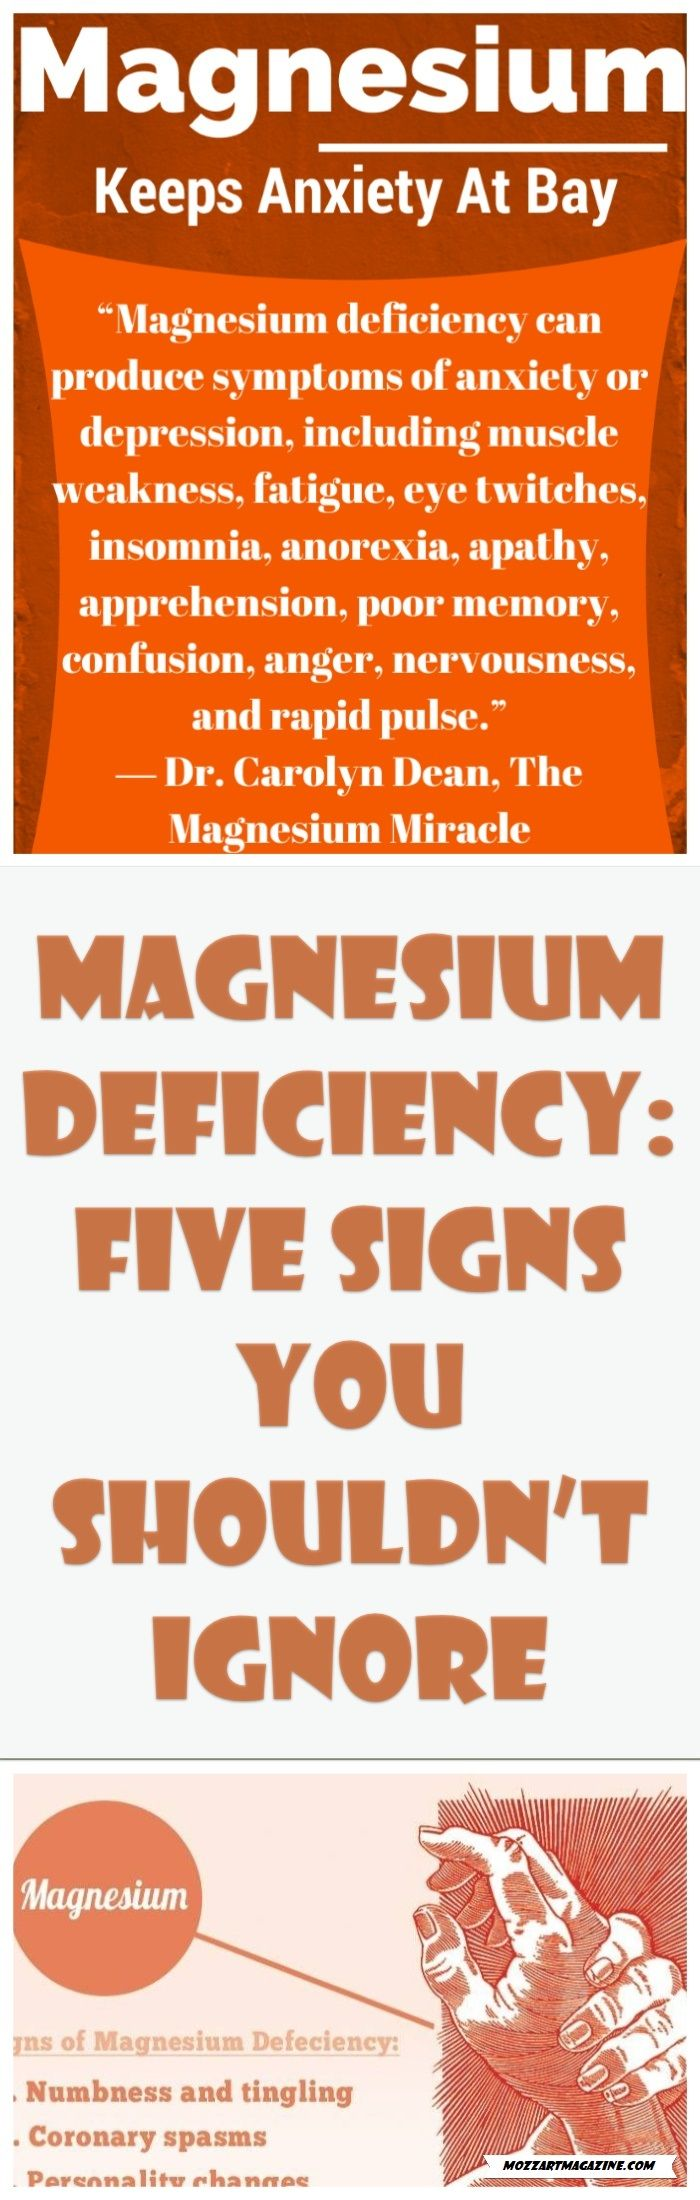 MAGNESIUM DEFICIENCY: FIVE SIGNS YOU SHOULDN'T IGNORE This mineral is of great importance for our body, besides the fact that most of the people do not know of